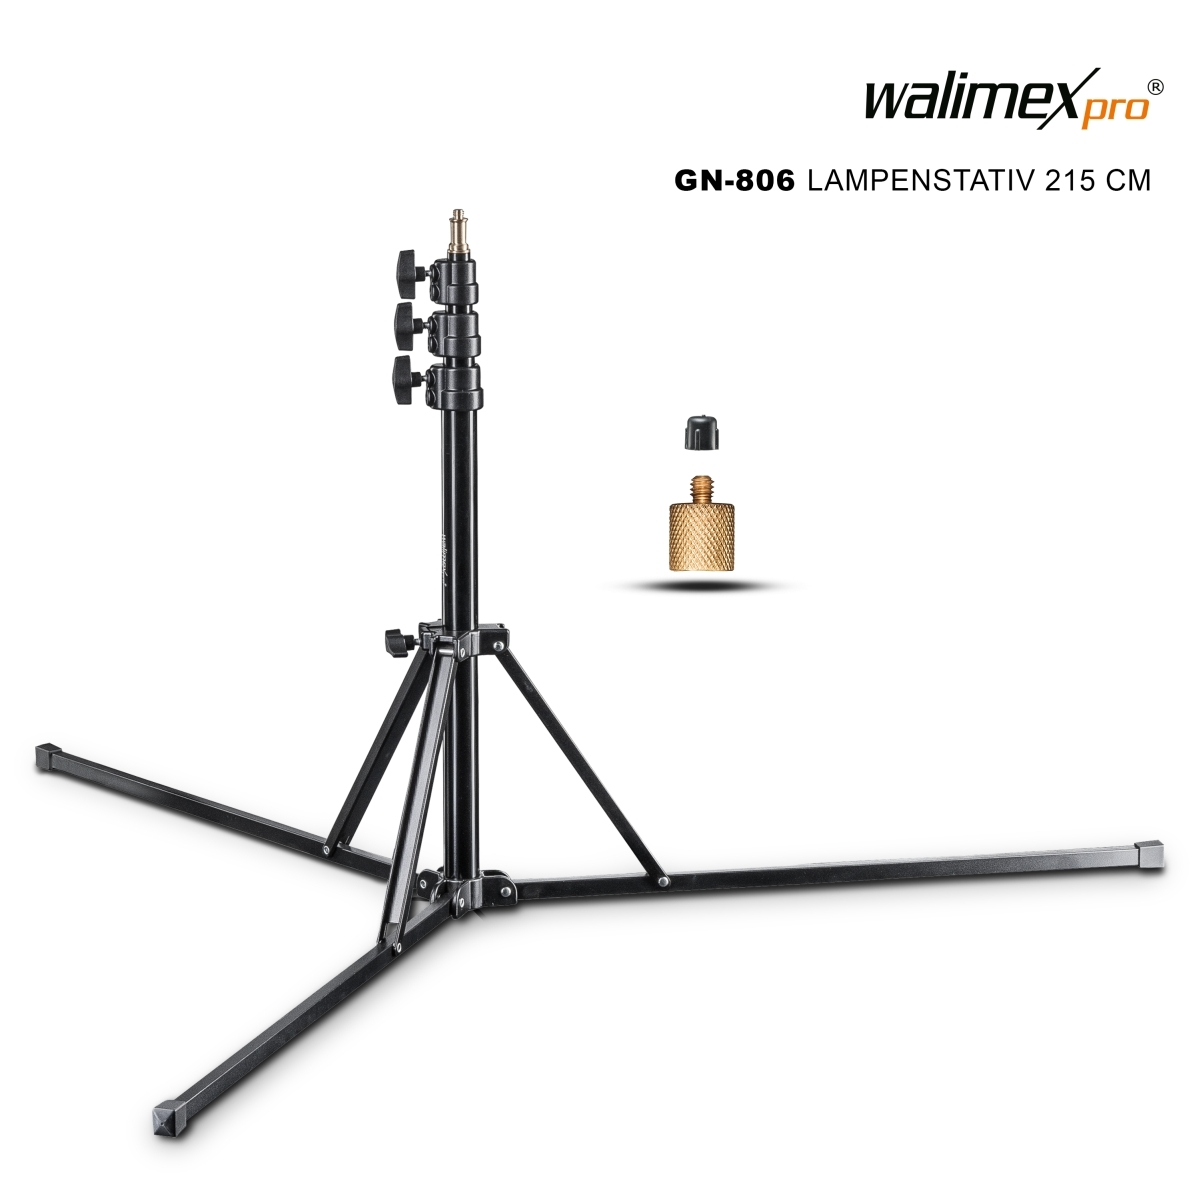 Walimex pro GN-806 Lamp stand 215cm